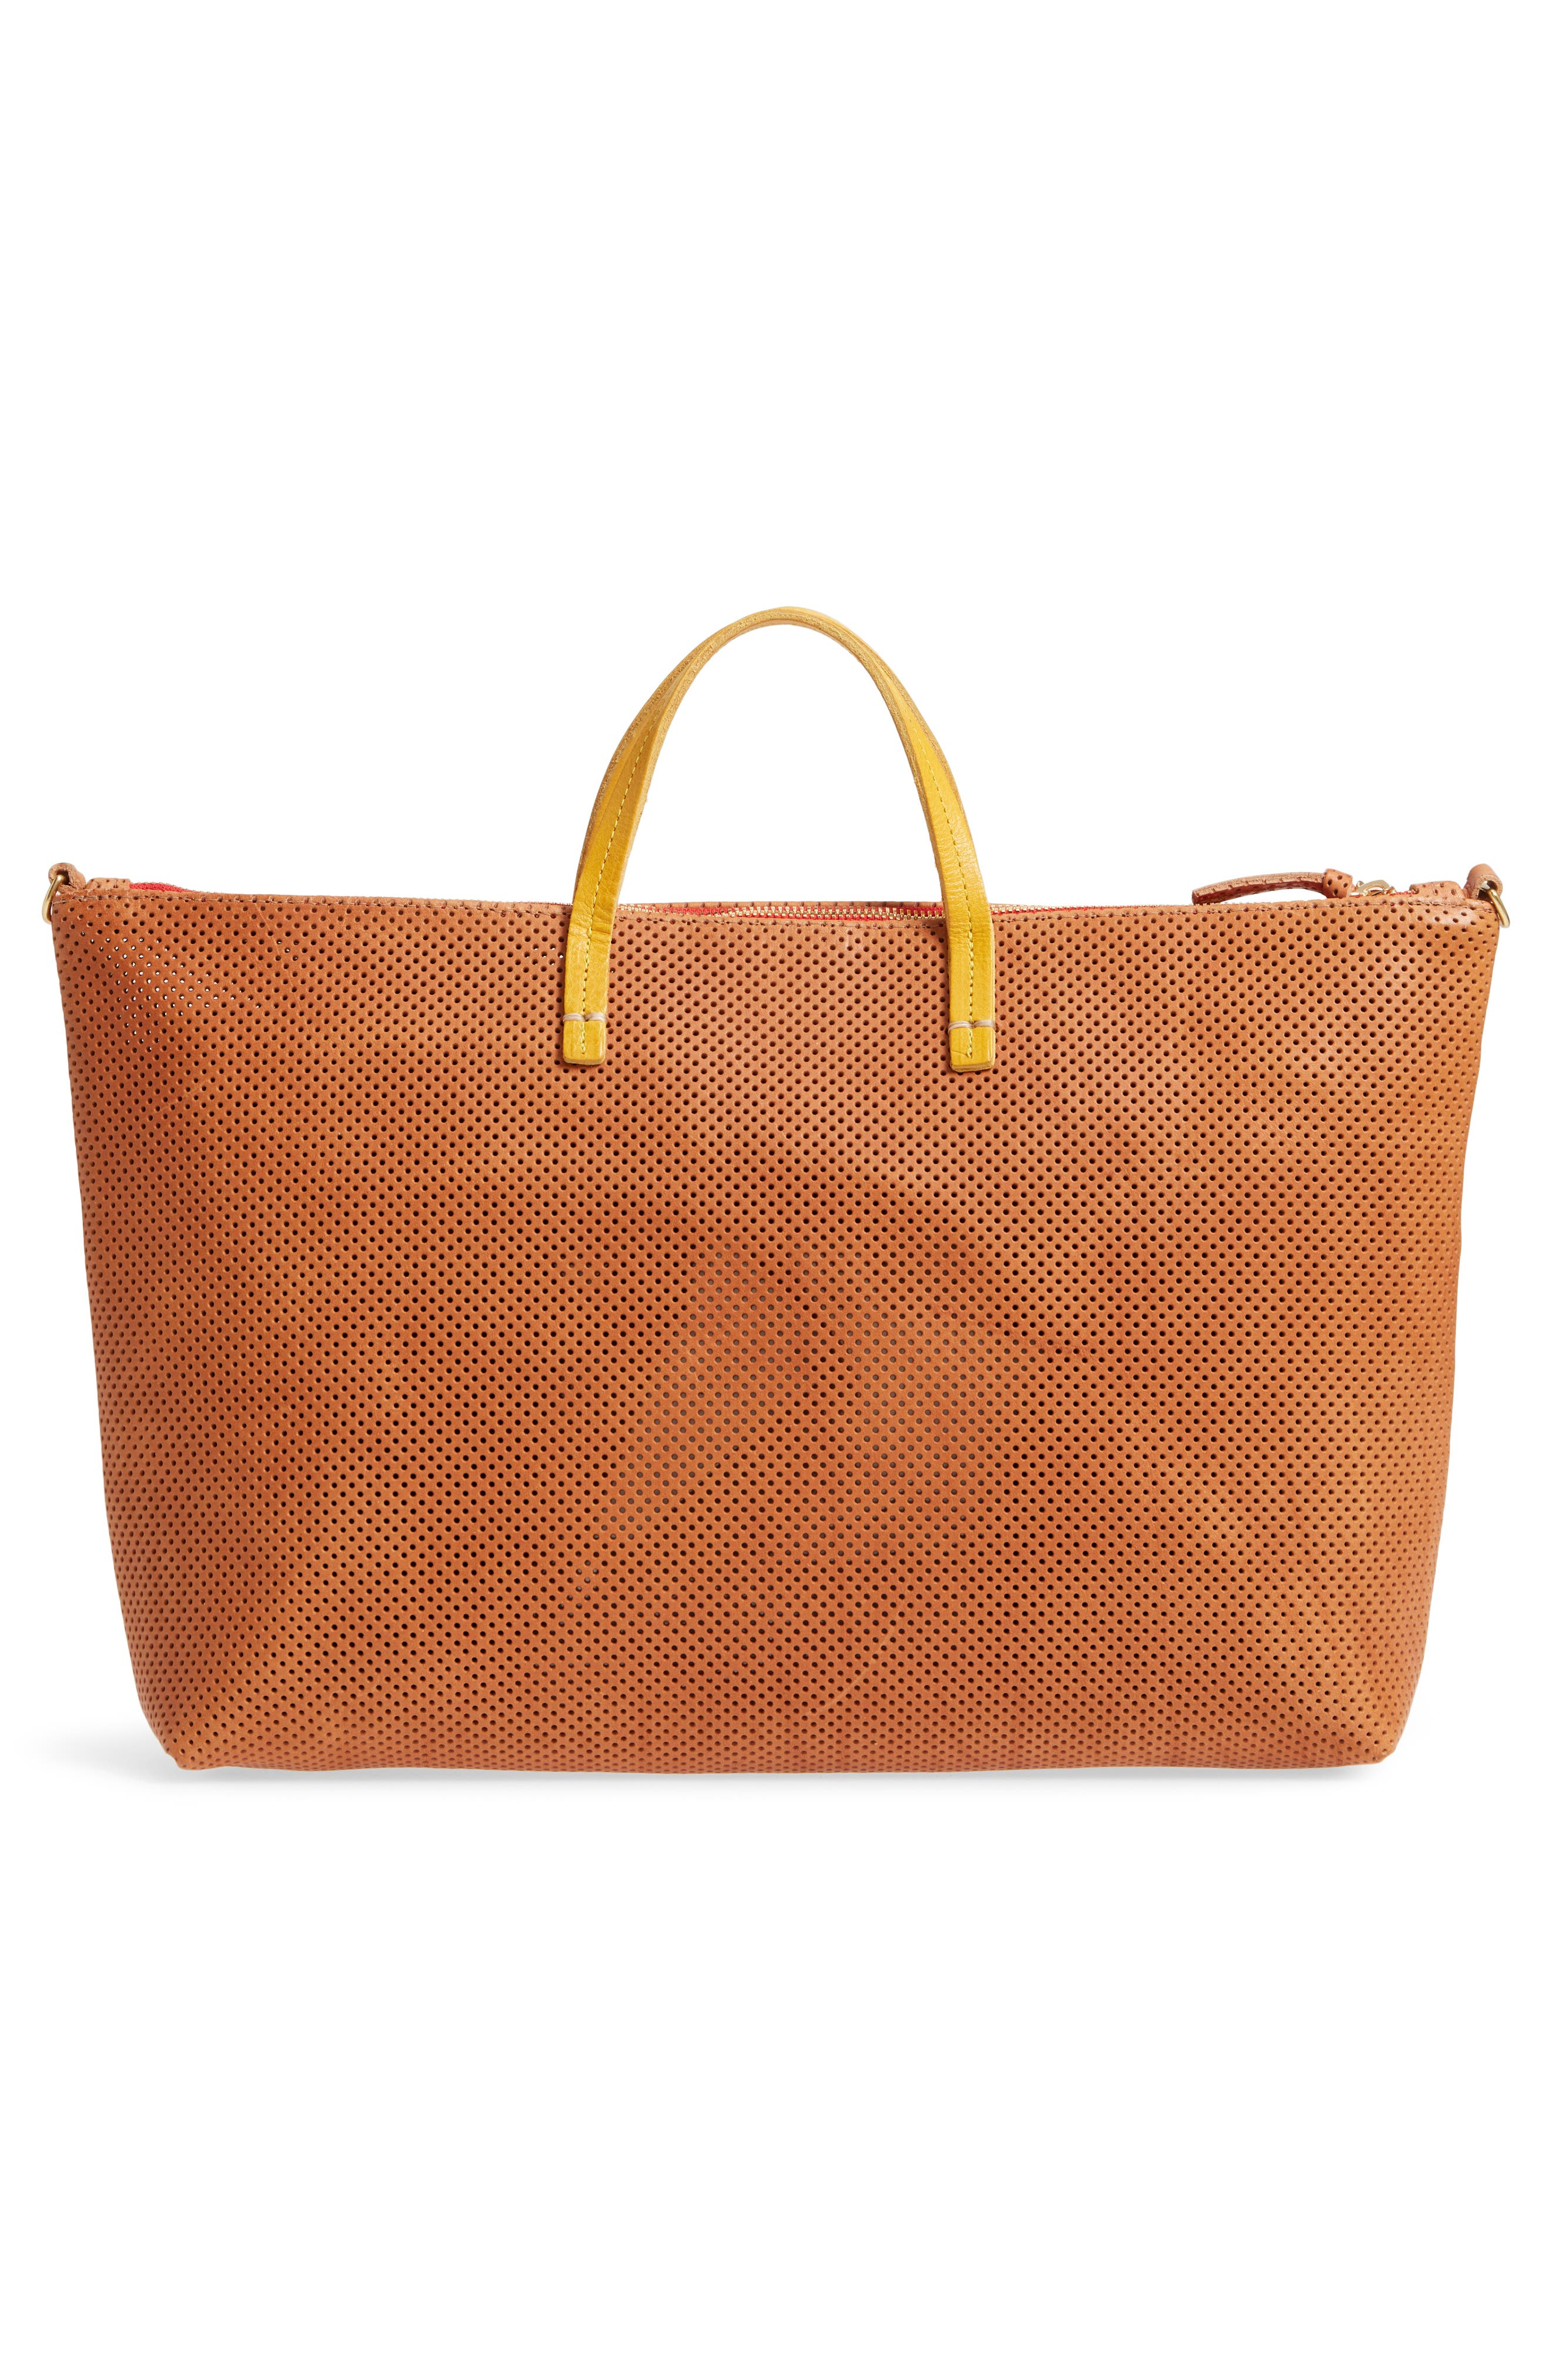 Perforated Leather Tote,                             Alternate thumbnail 3, color,                             200